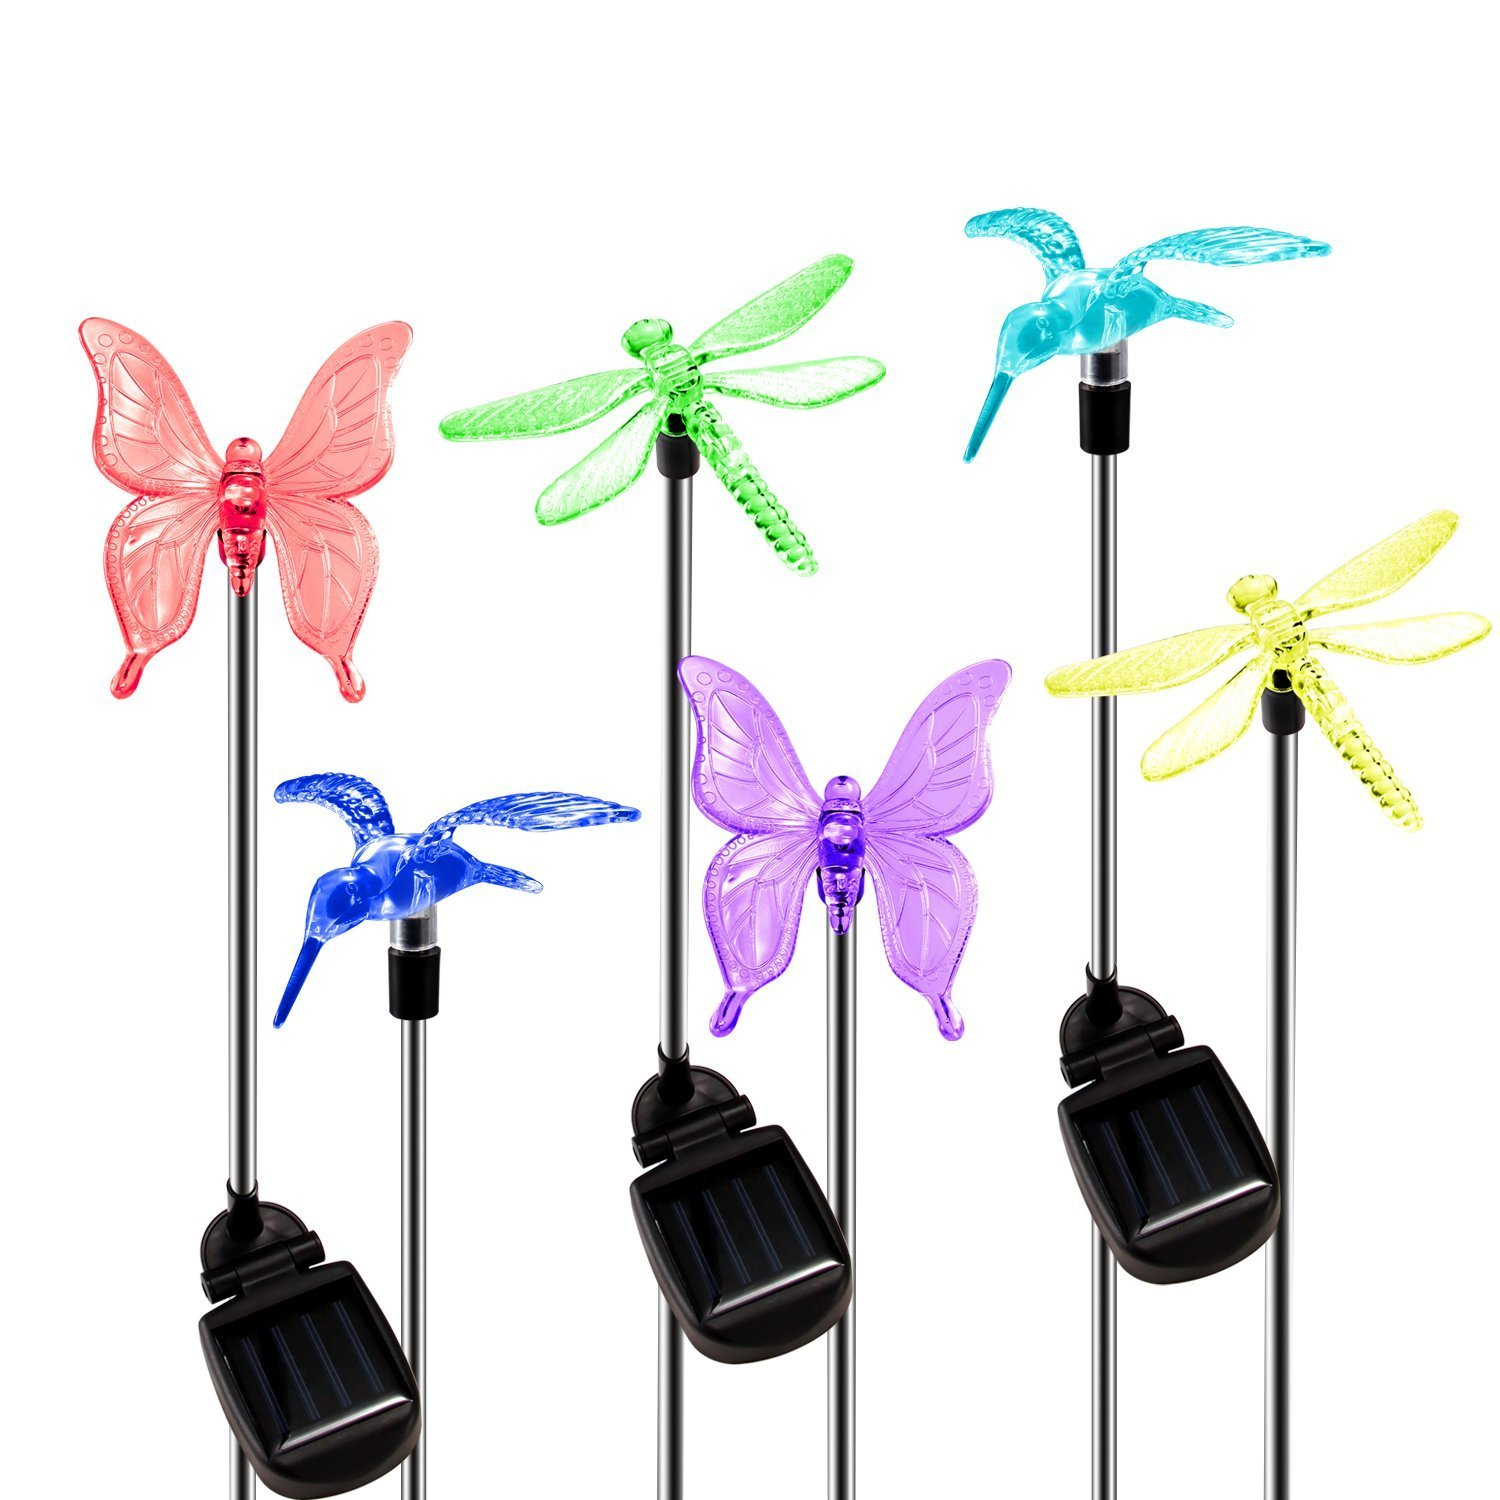 Garden Solar Lights Outdoor, 6-pack OxyLED Figurine Stake Light, Multi-Color Changing Decorative Landscape Lighting LED Hummingbird Butterfly Dragonfly for Patio Lawn Yard, Auto On/Off Dusk to Dawn